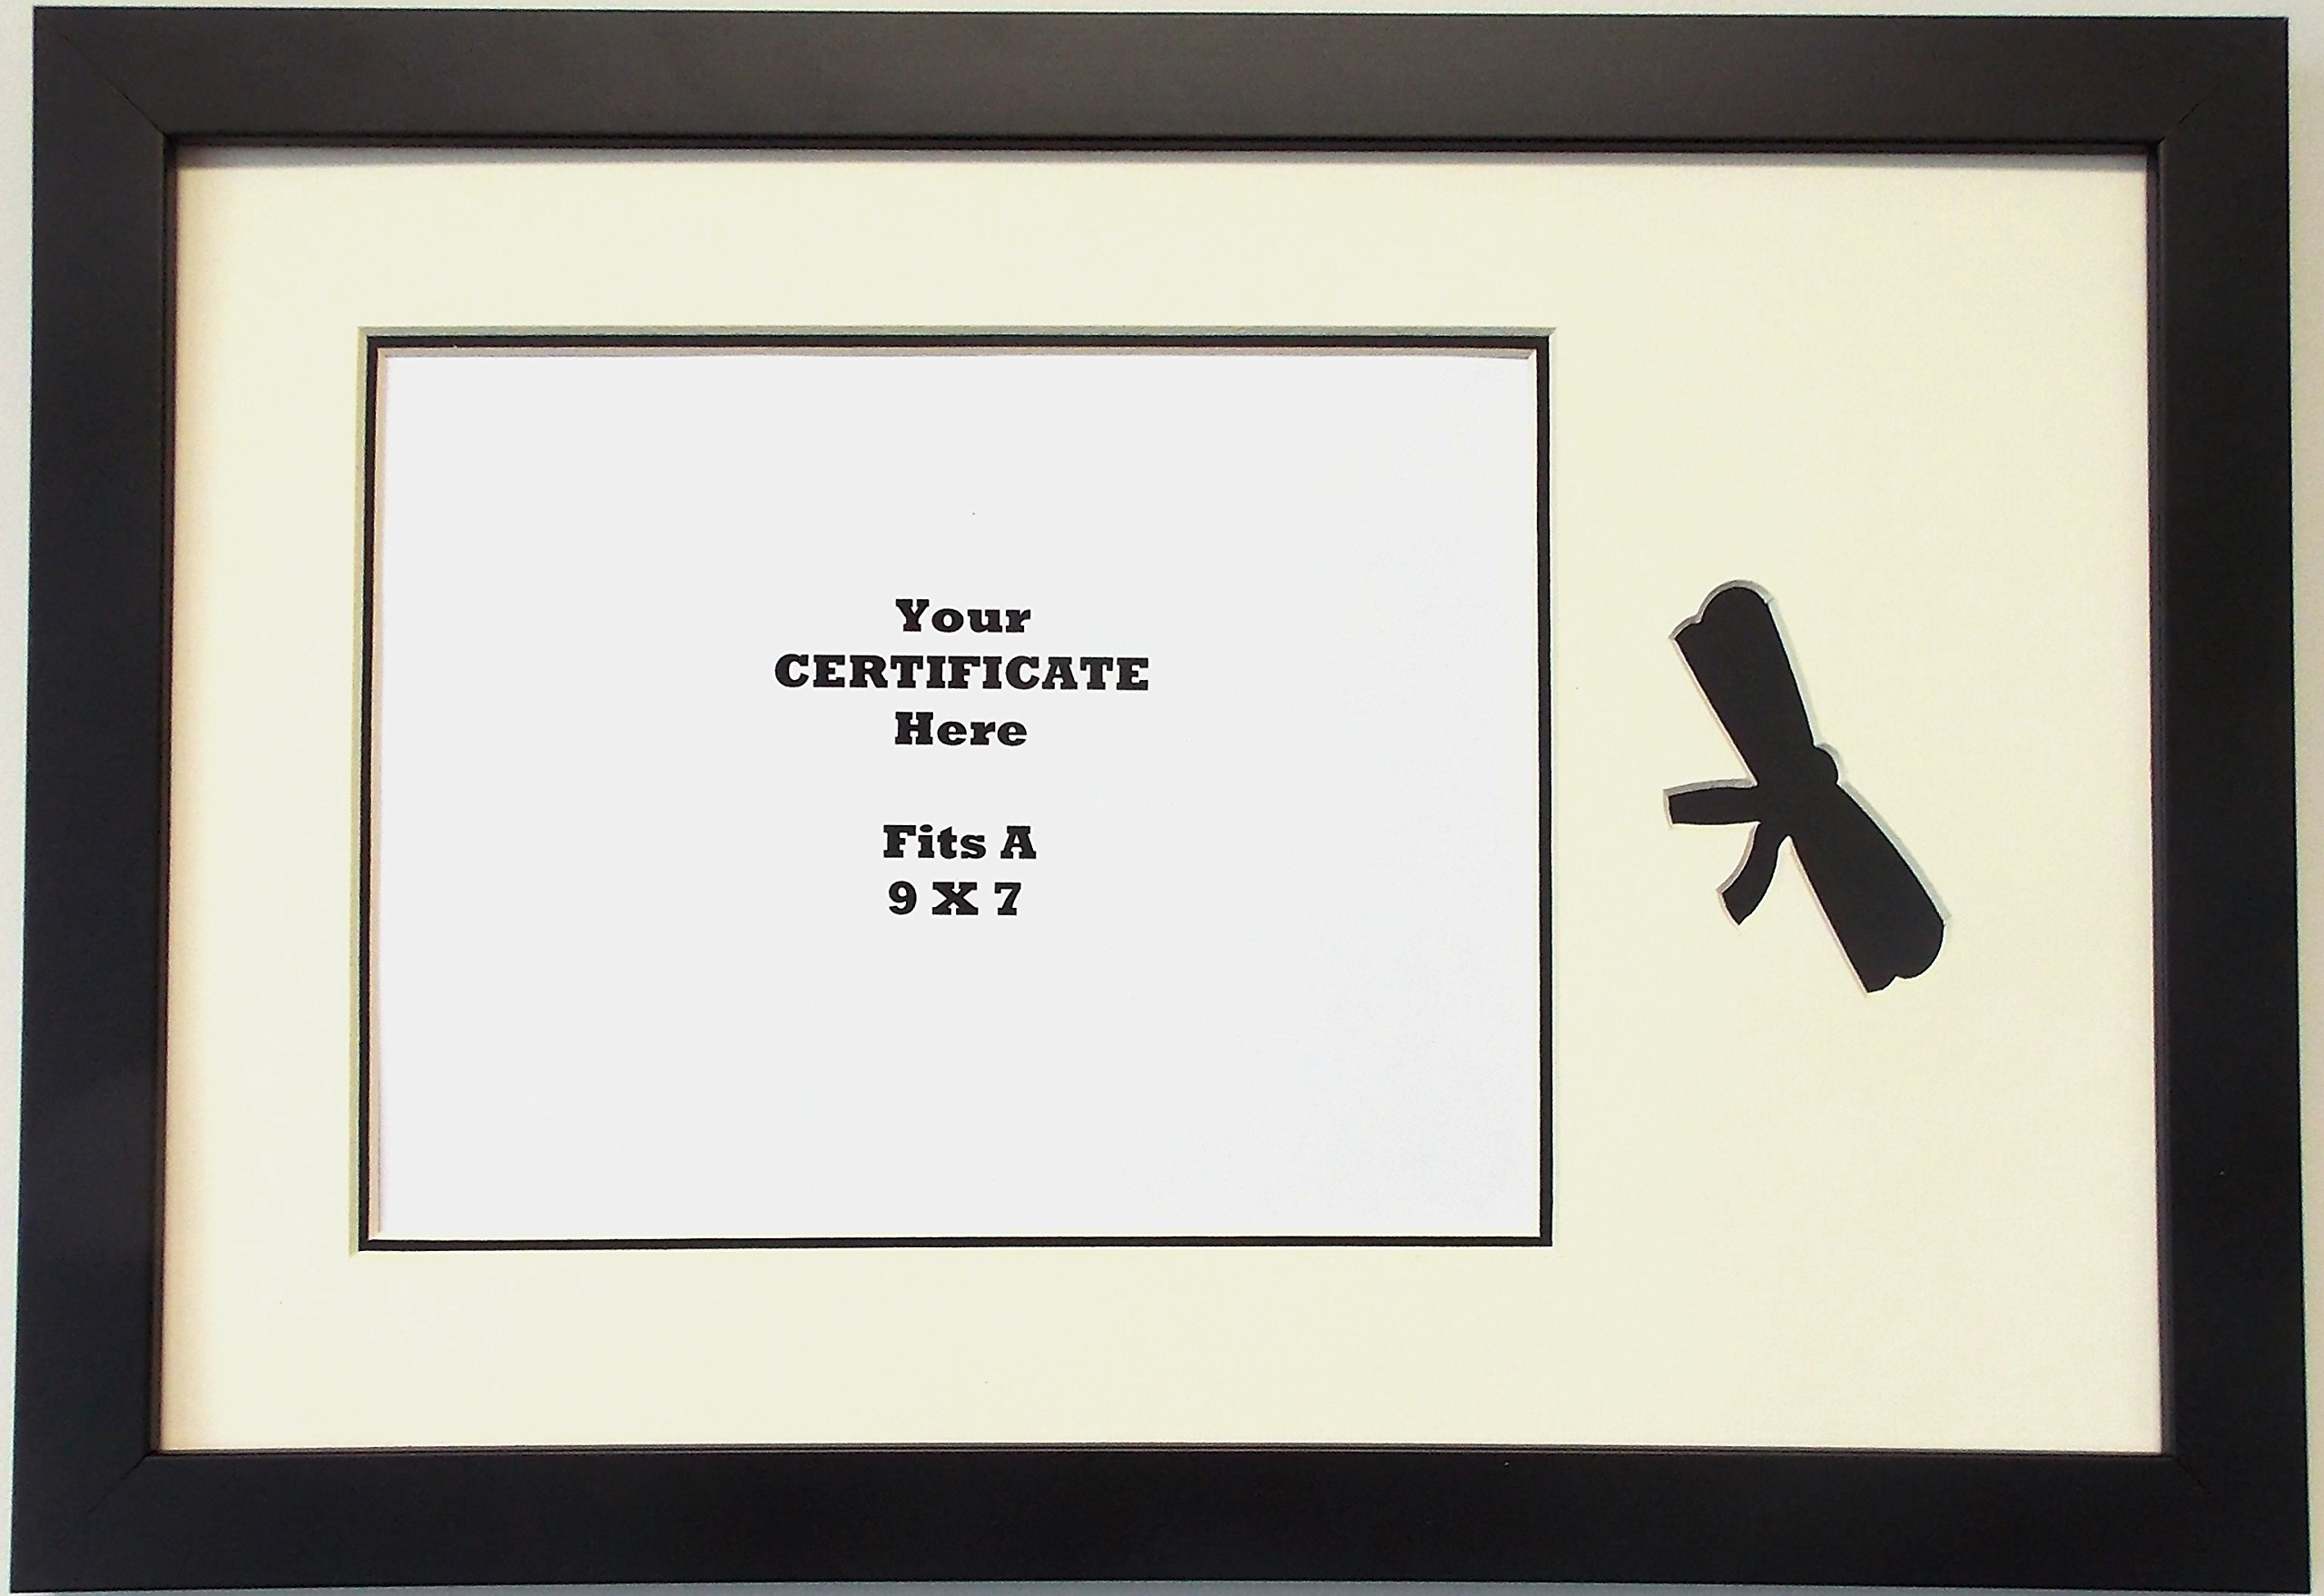 Graduation University Diploma Certificate Picture Frame Matted Holds 9x7 Certificate Black Frame